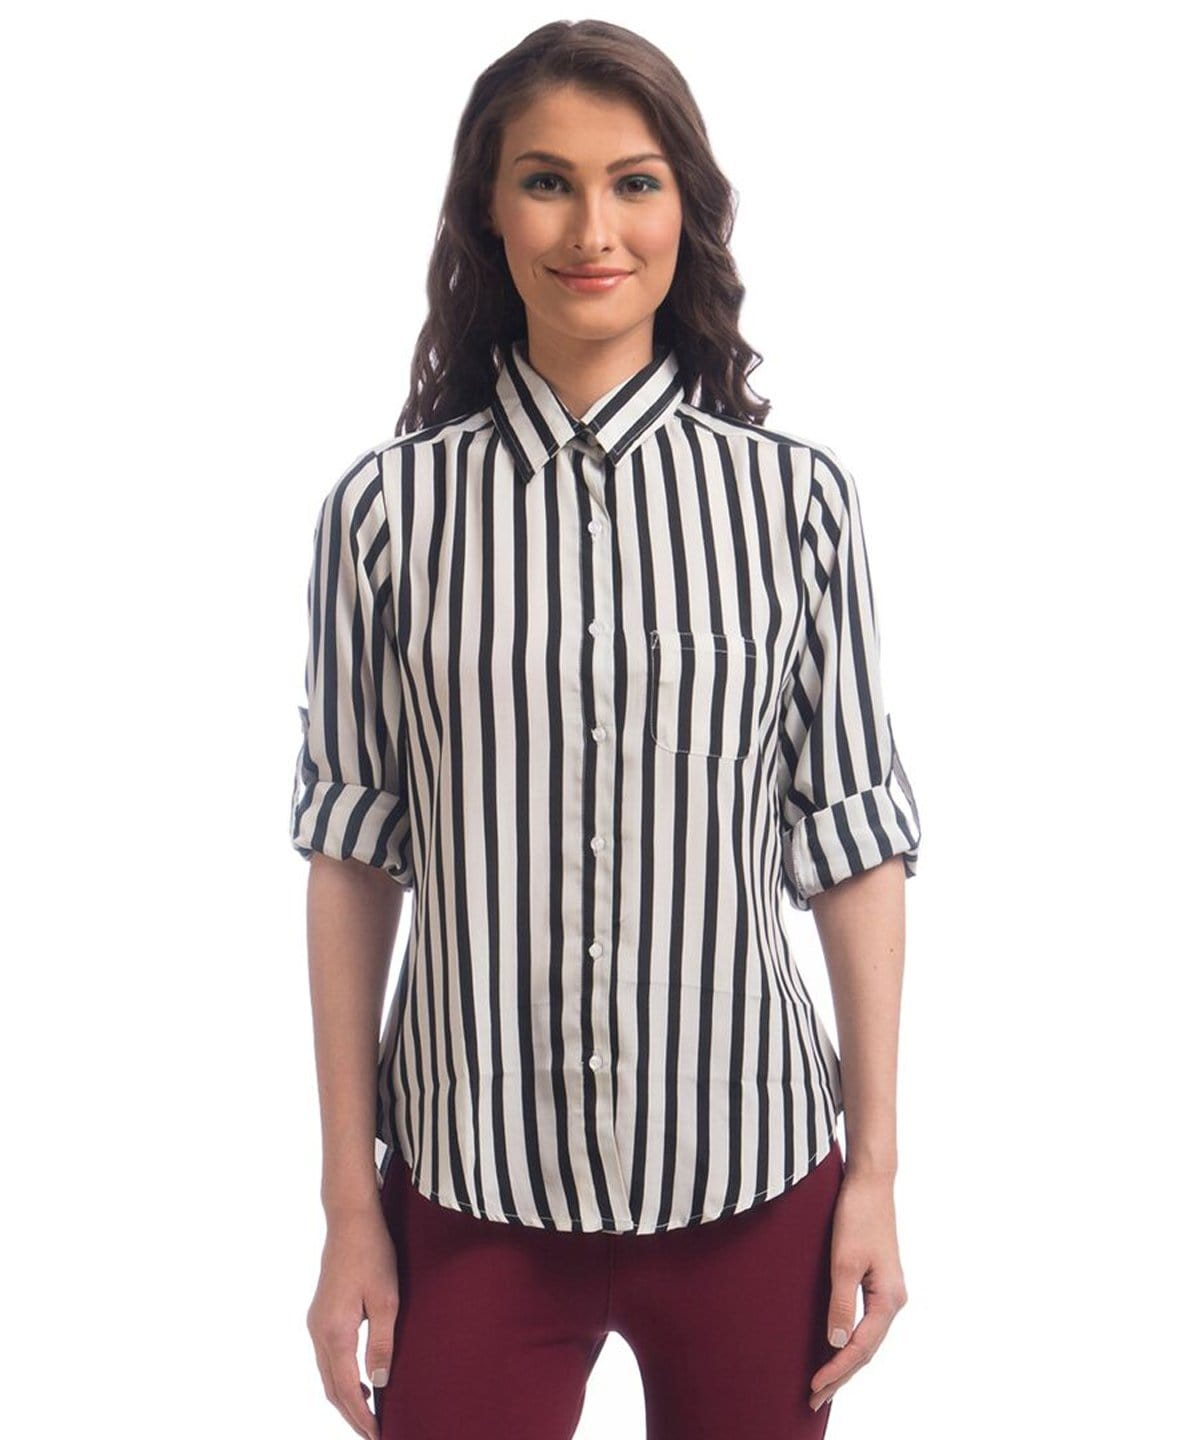 Uptownie Black & White Striped Crepe Shirt 1 clearance sale